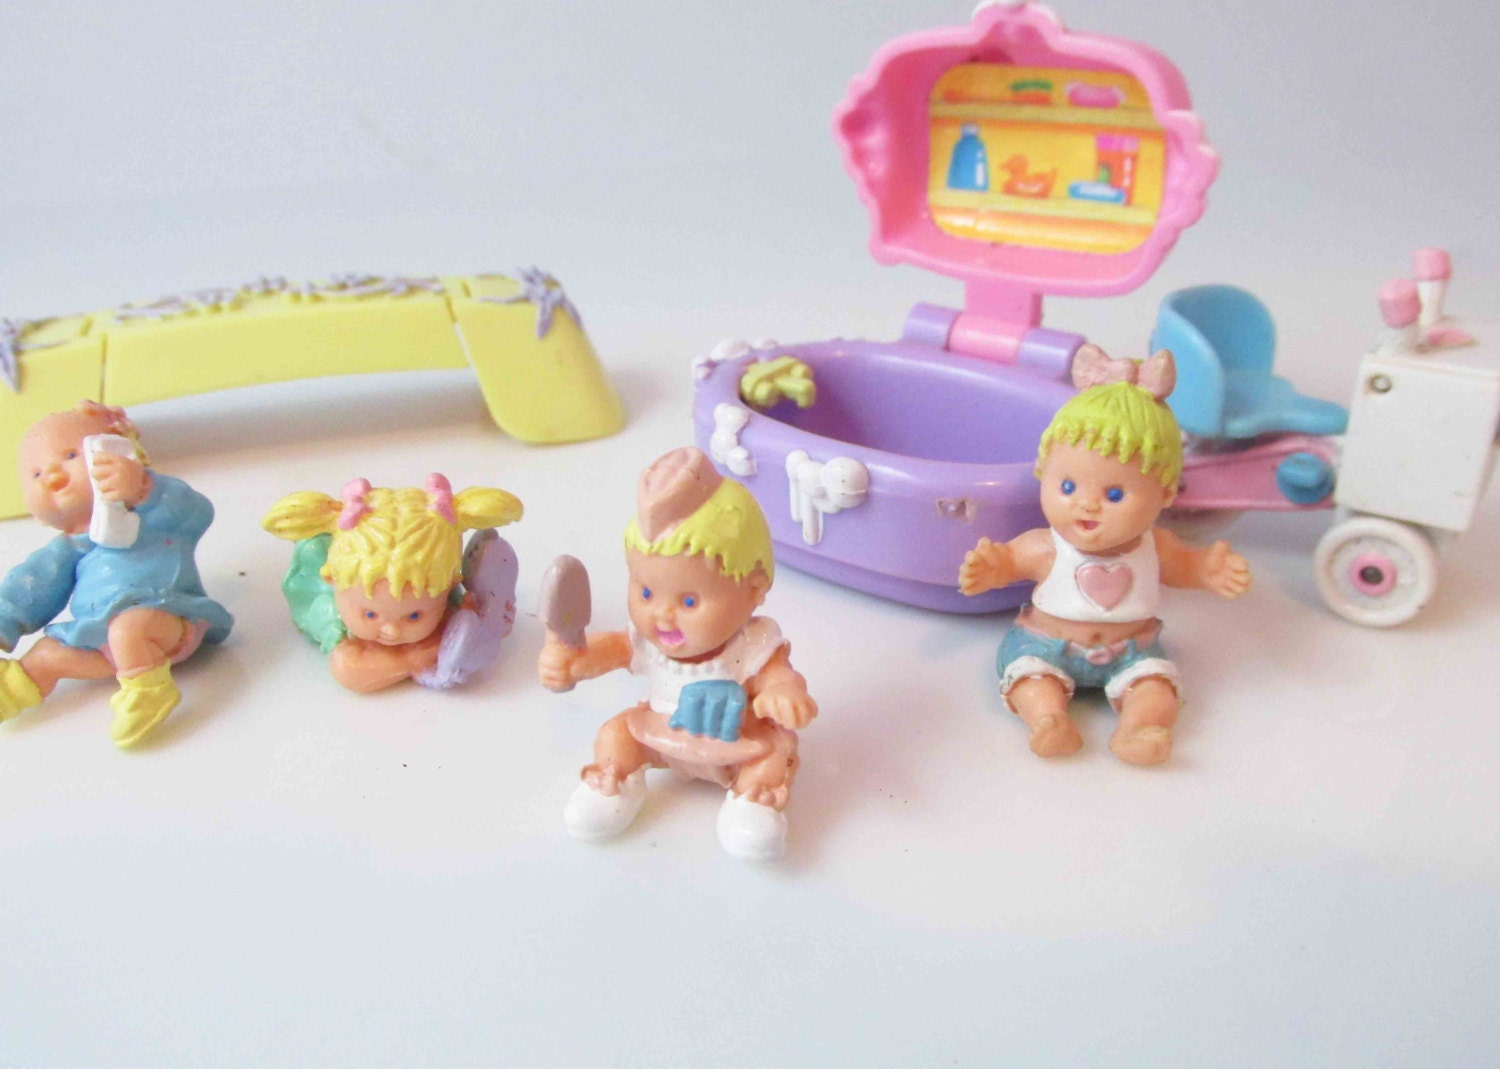 1990 S Toys : S toys pictures to pin on pinterest daddy